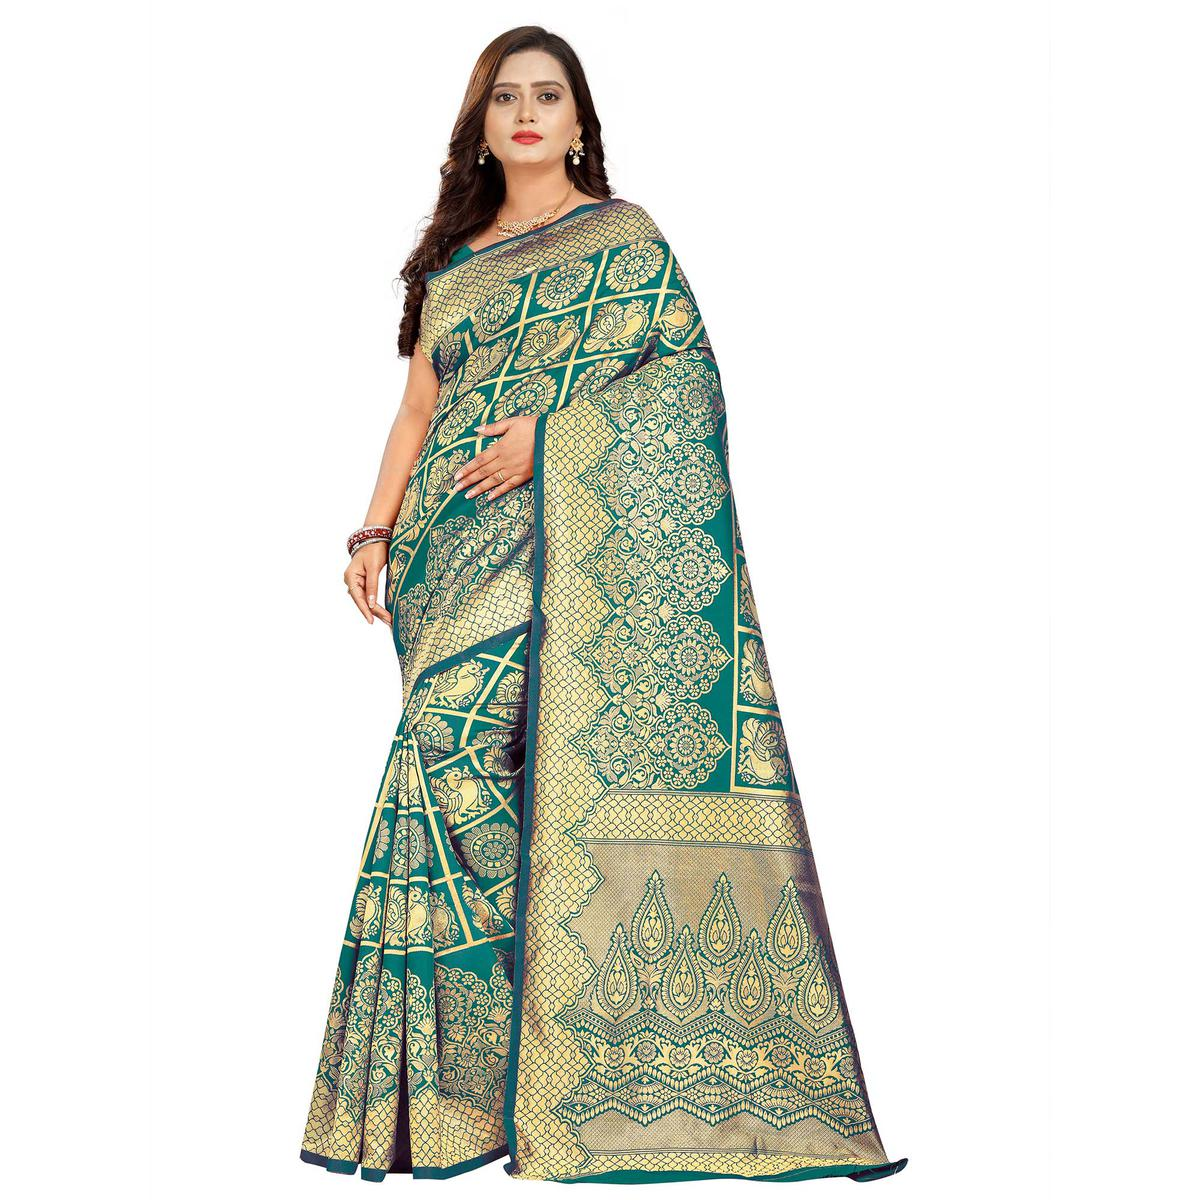 Engrossing Turquoise Green Colored Festive Wear Woven Silk Saree